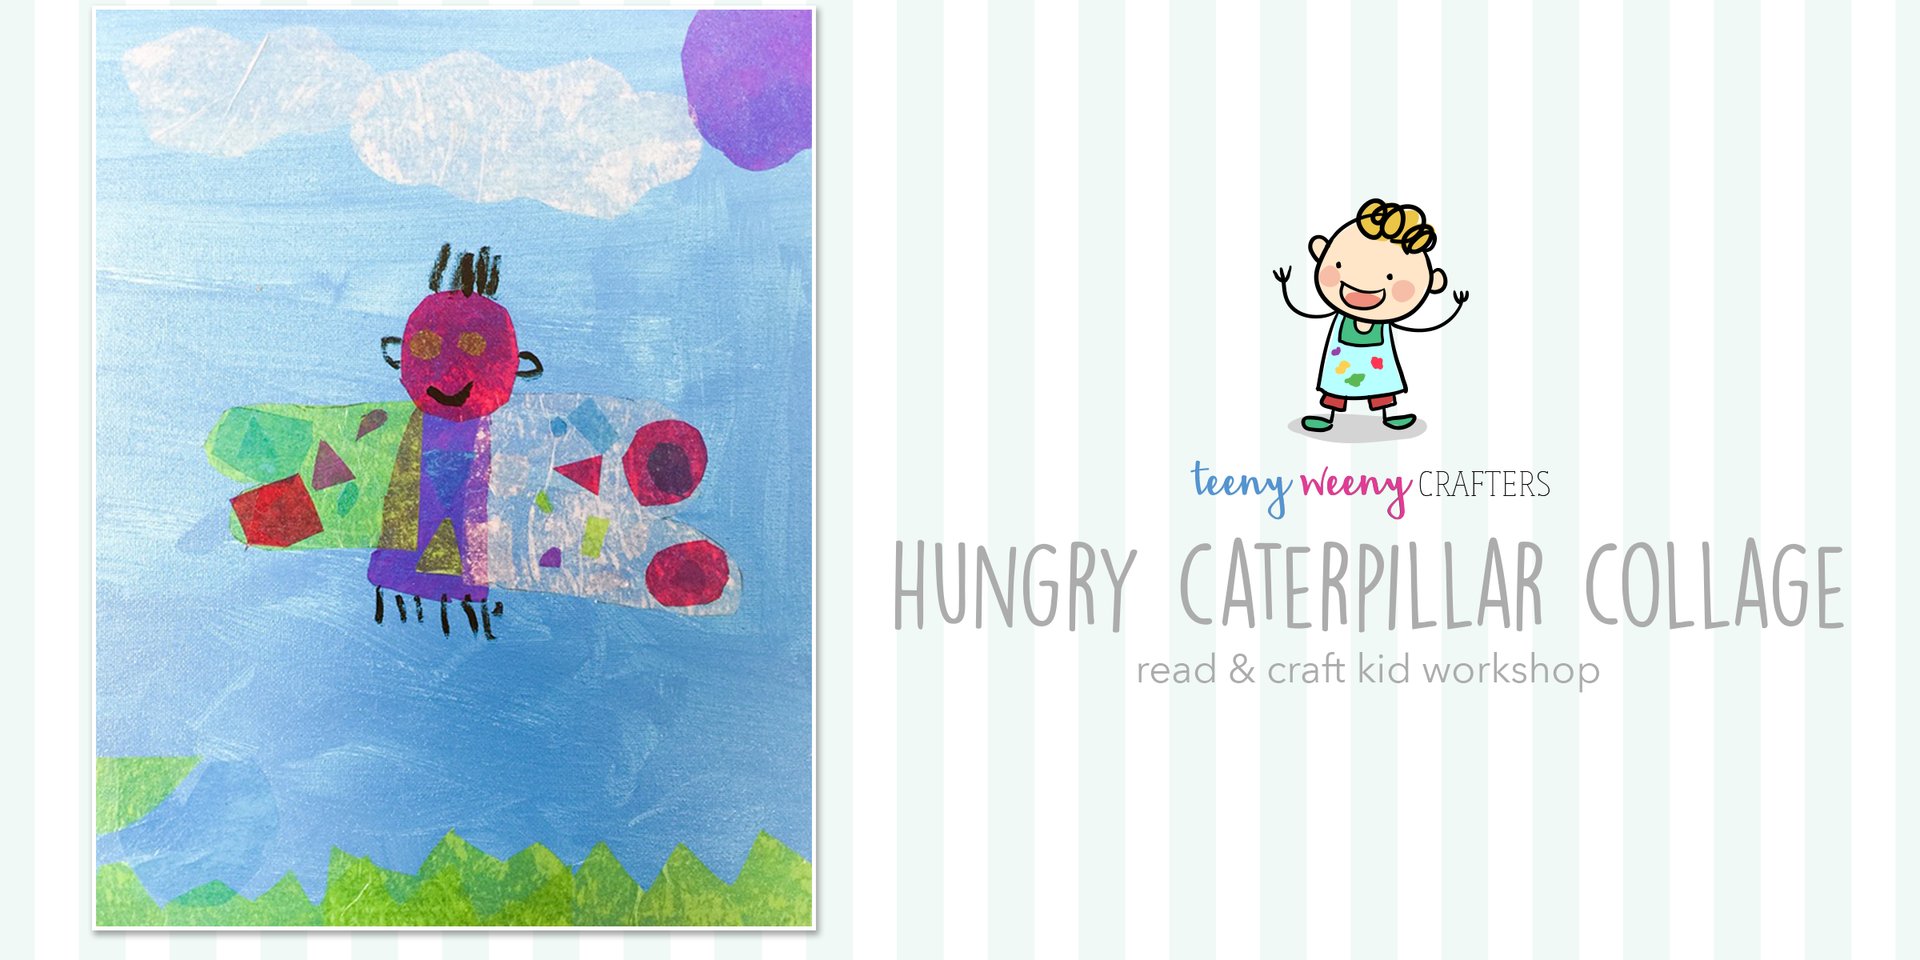 Hungry Caterpillar Collage